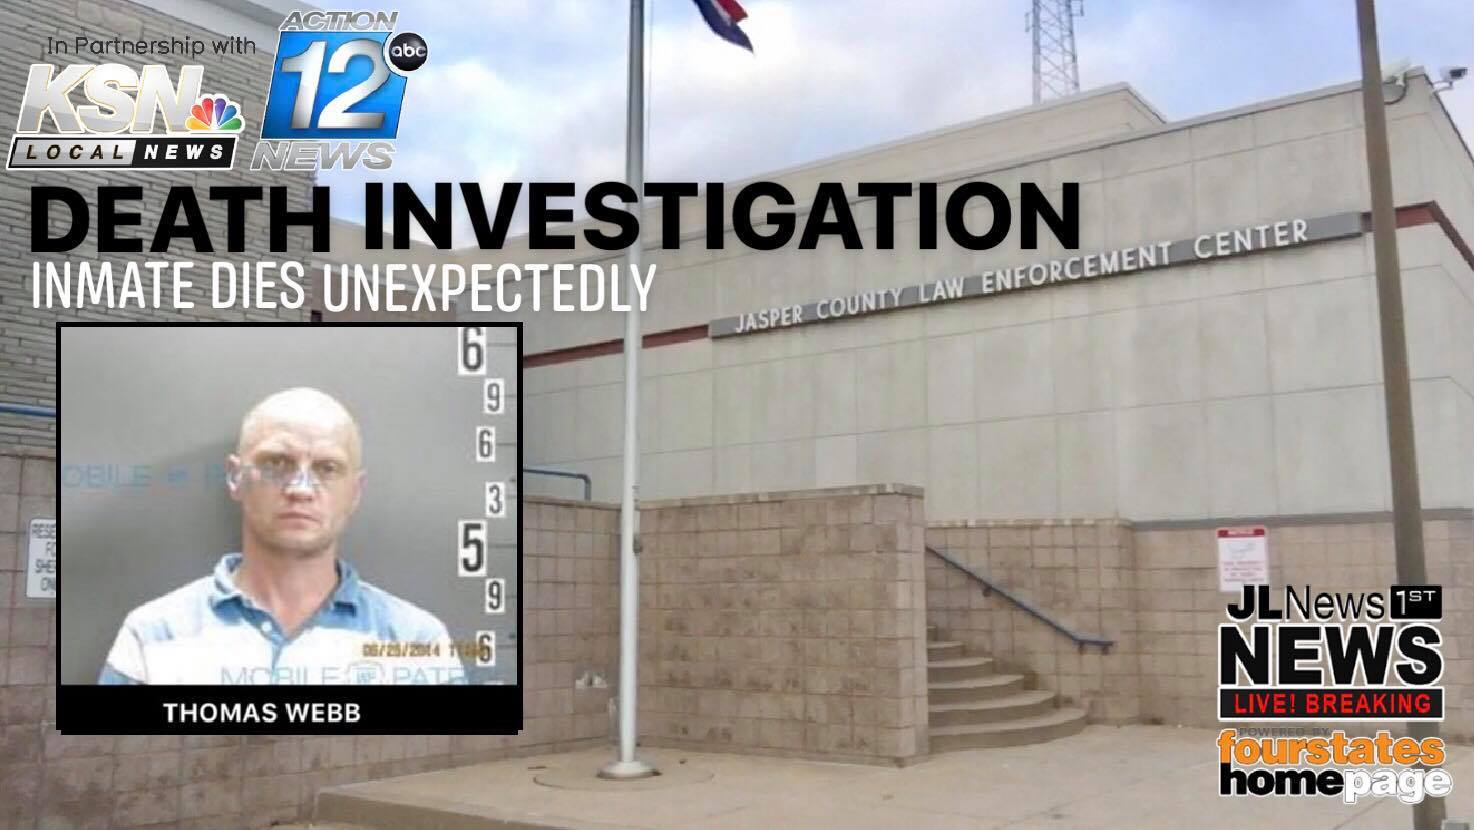 Inmate unexpectedly dies in the county jail sparking death investigation